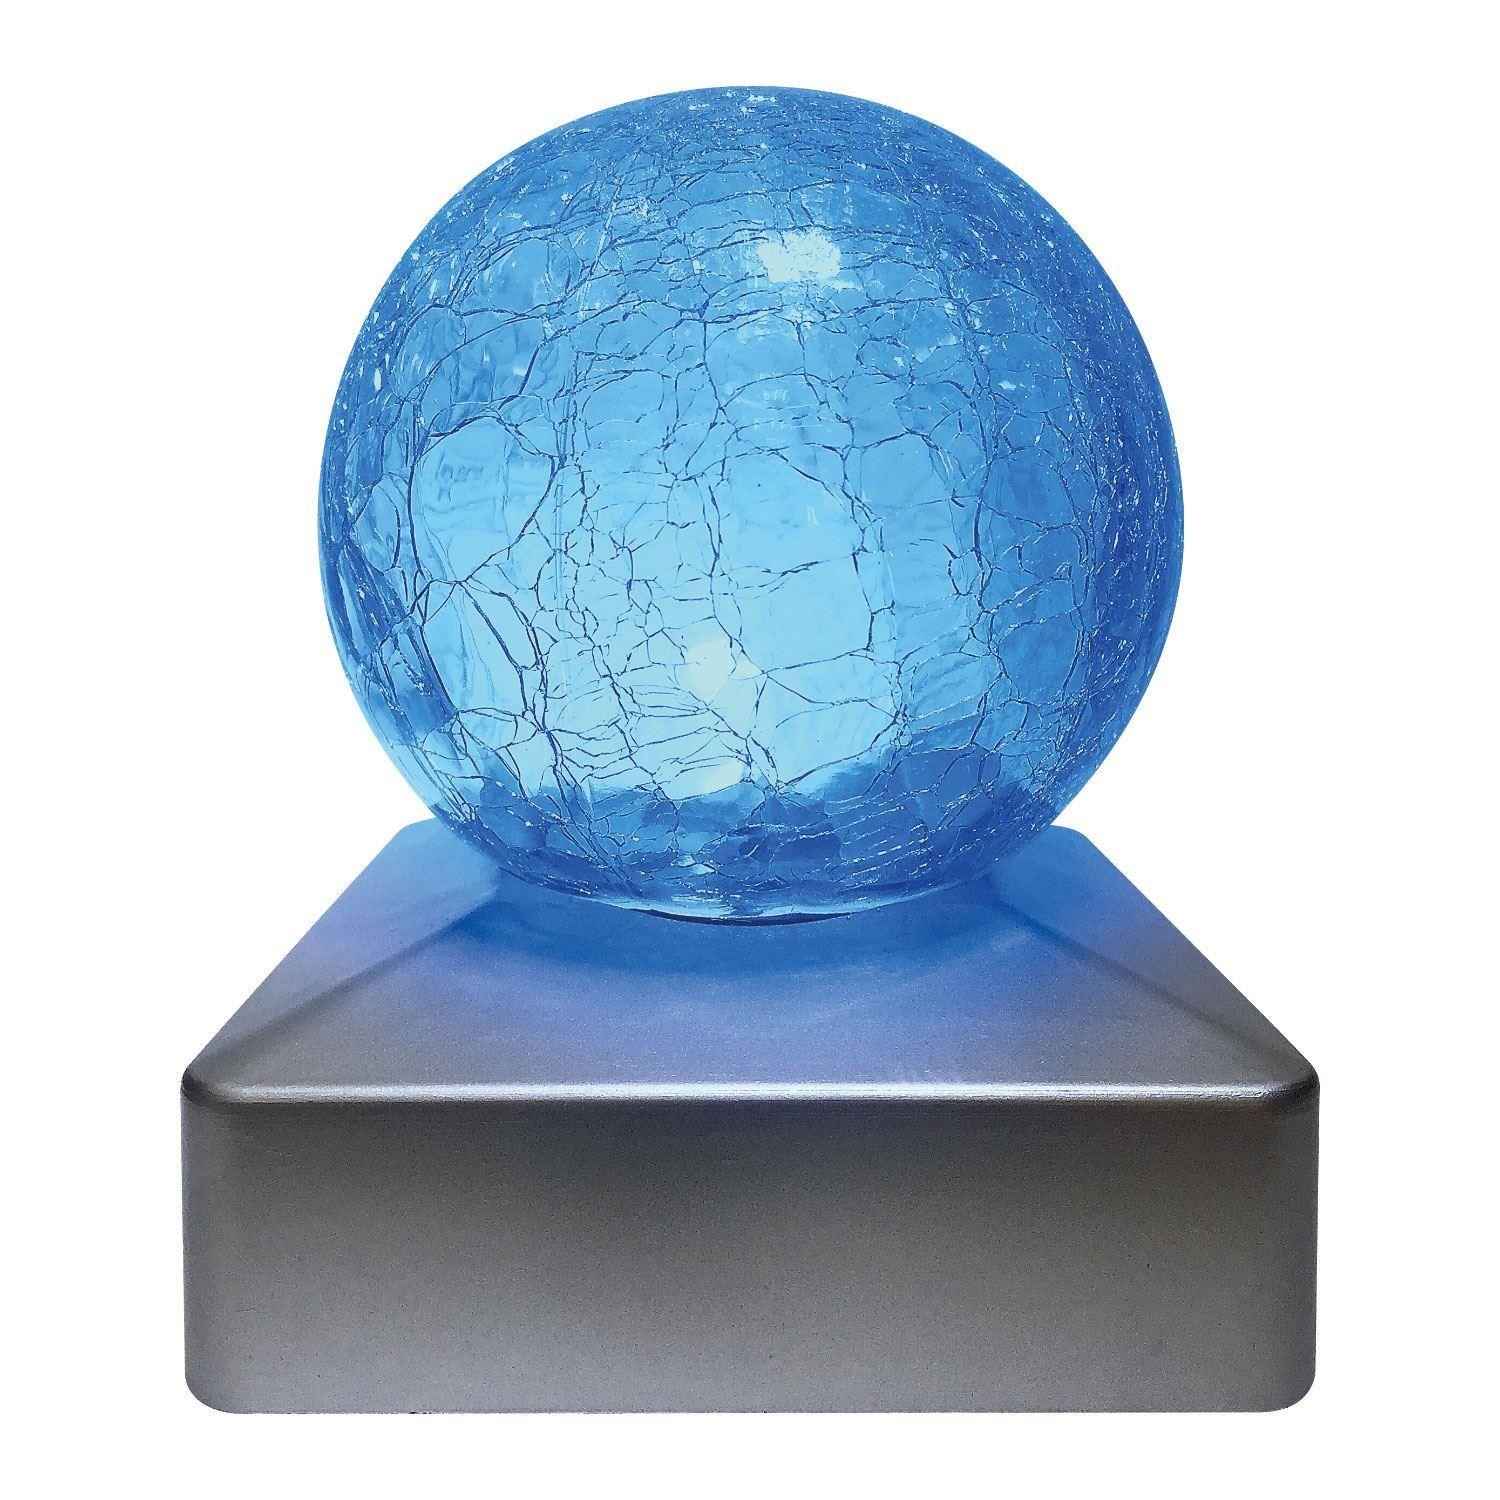 Solar Crackle Glass Ball Garden Post Deck Cap Light Square